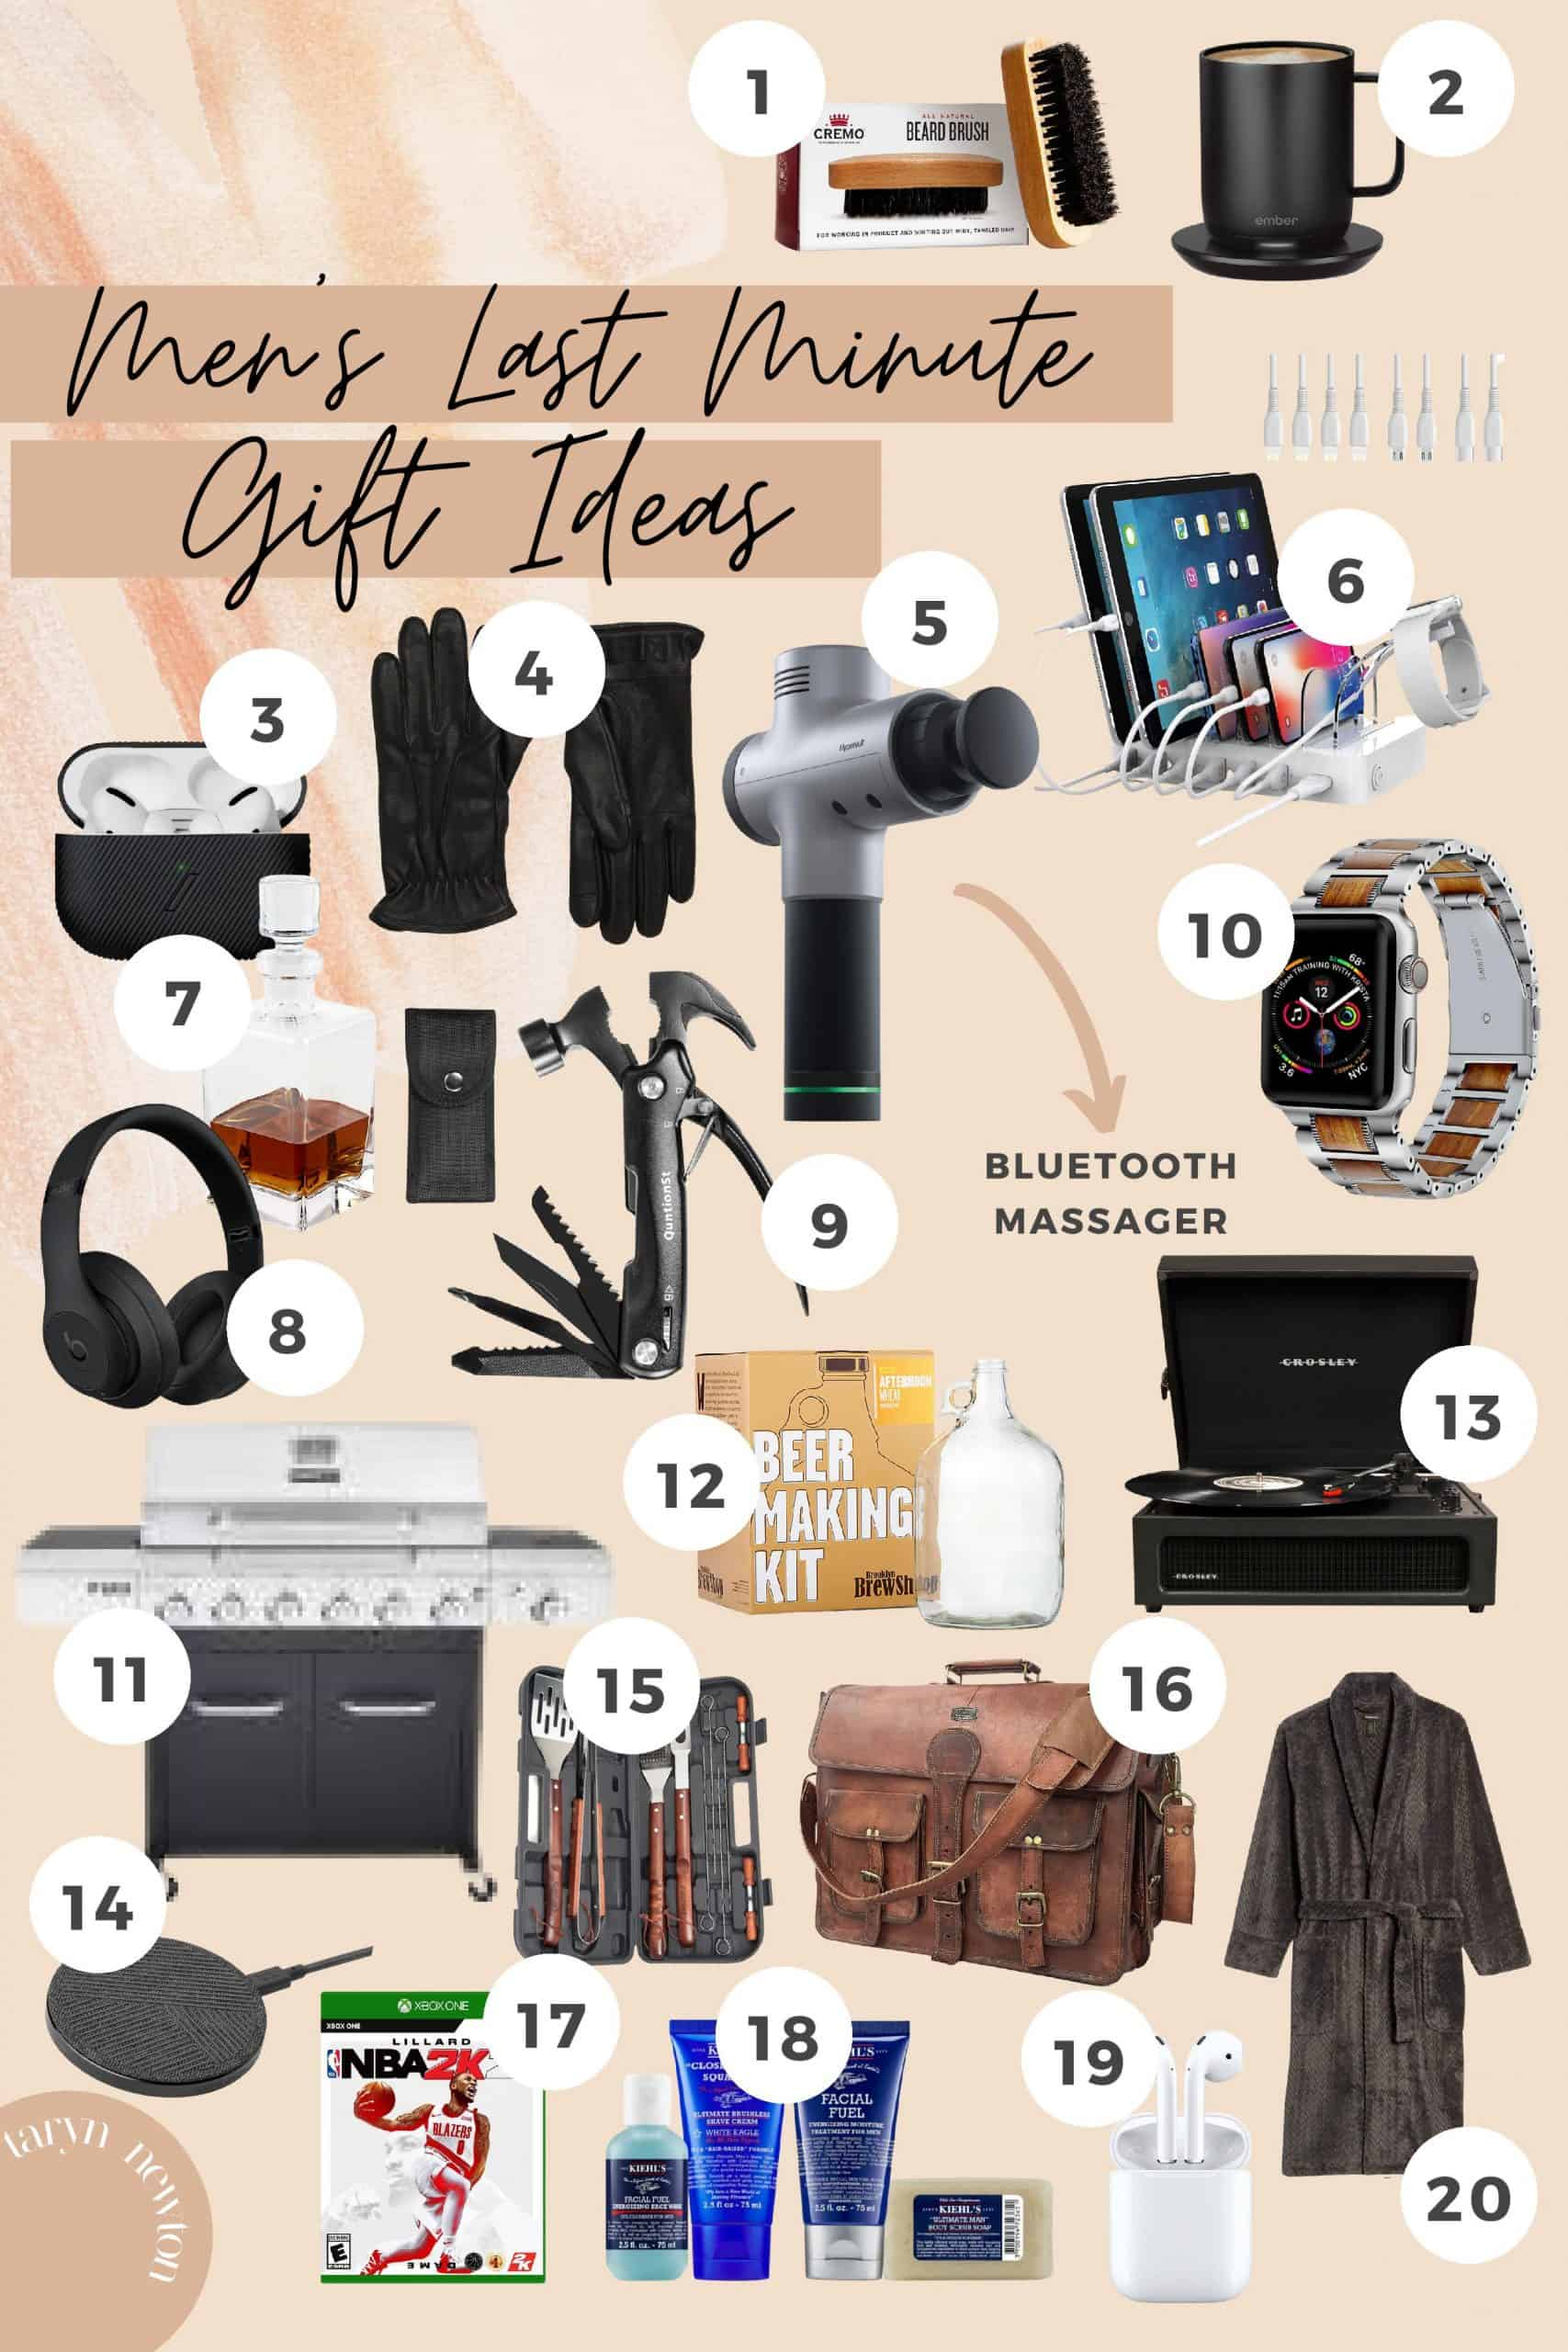 Gifts for Him by popular Dallas life and style blog, Glamorous Versatility: collage image of a BBQ grill, wireless charger, bathrobe, watch, leather gloves, bluetooth headphones, airpods, record player, airpods case, xbox video games, beer making kit, beard brush, grill set, quick charge charging station, and leather messenger bag.